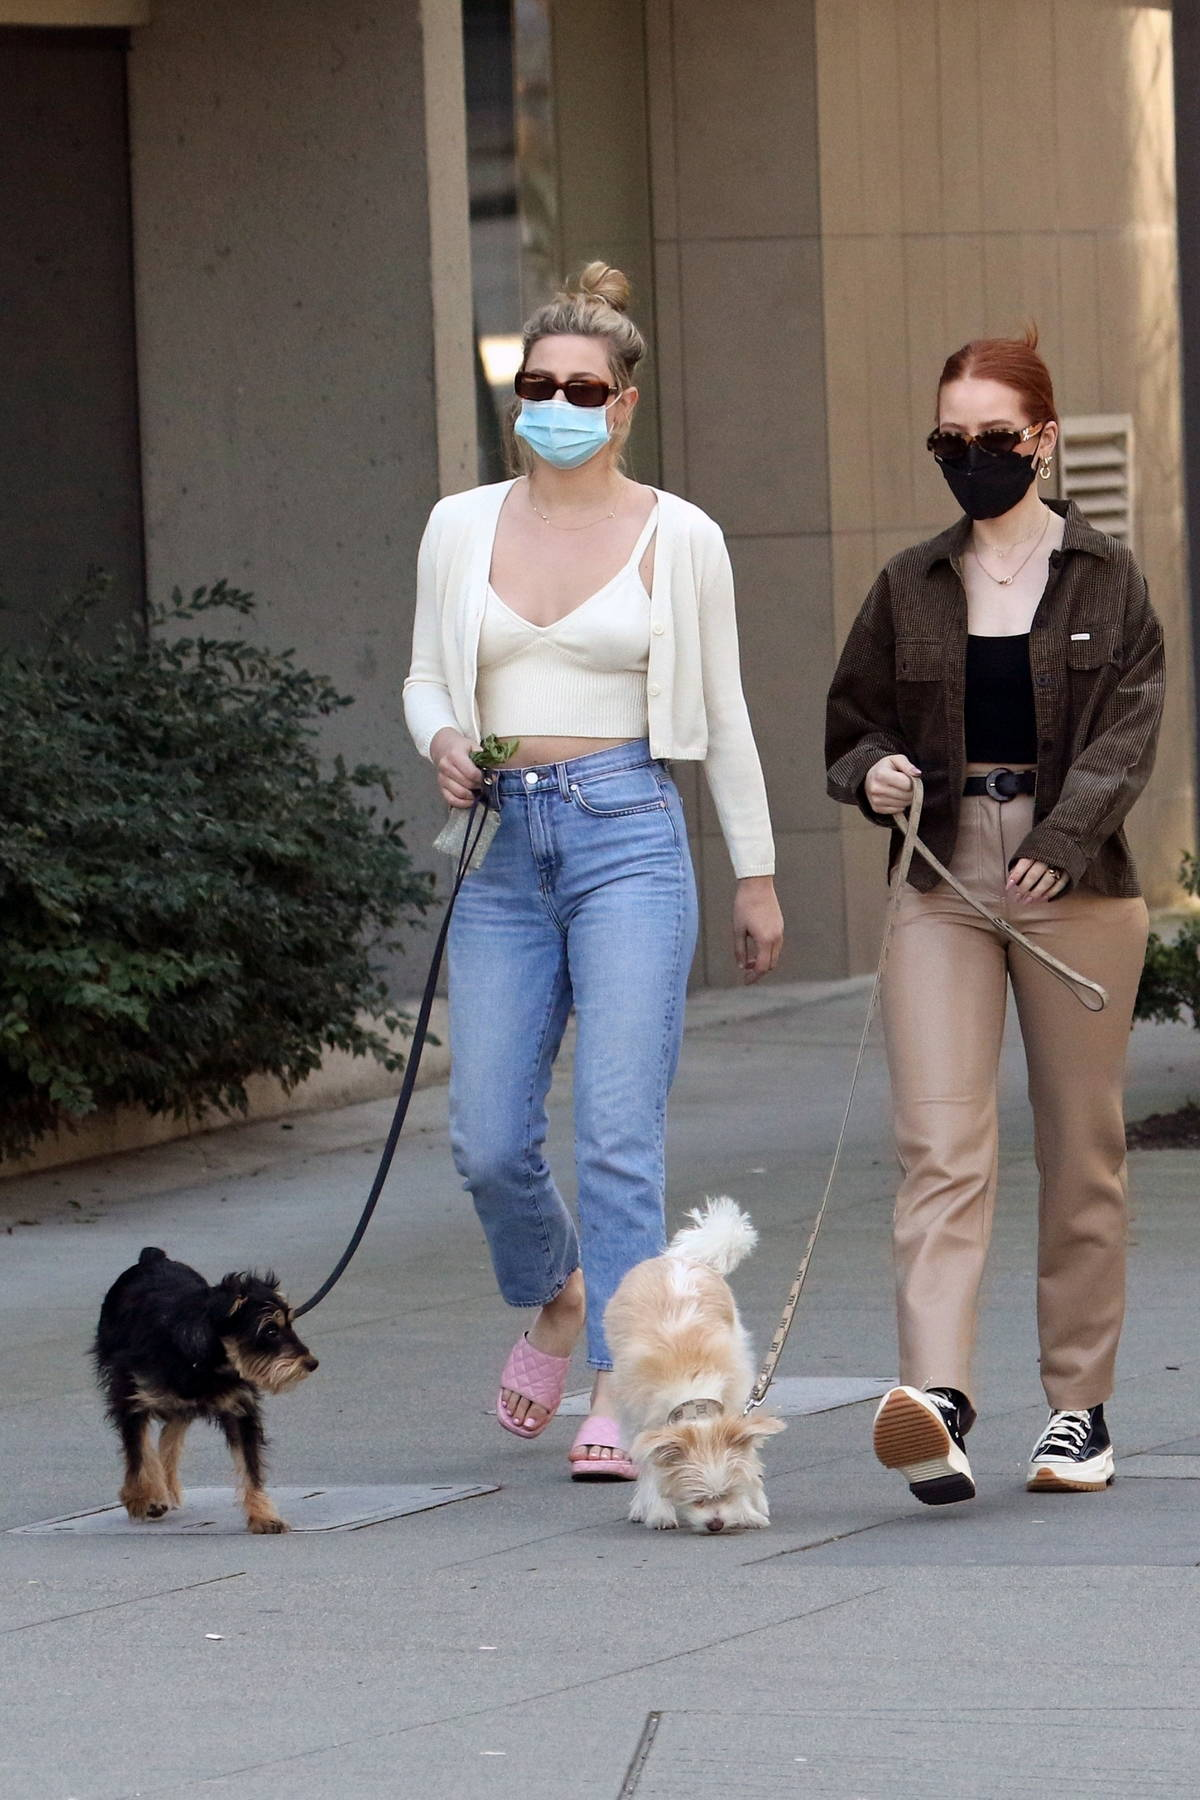 Lili Reinhart wears a cream crop top as she takes a walk with Madelaine Petsch in Vancouver, Canada